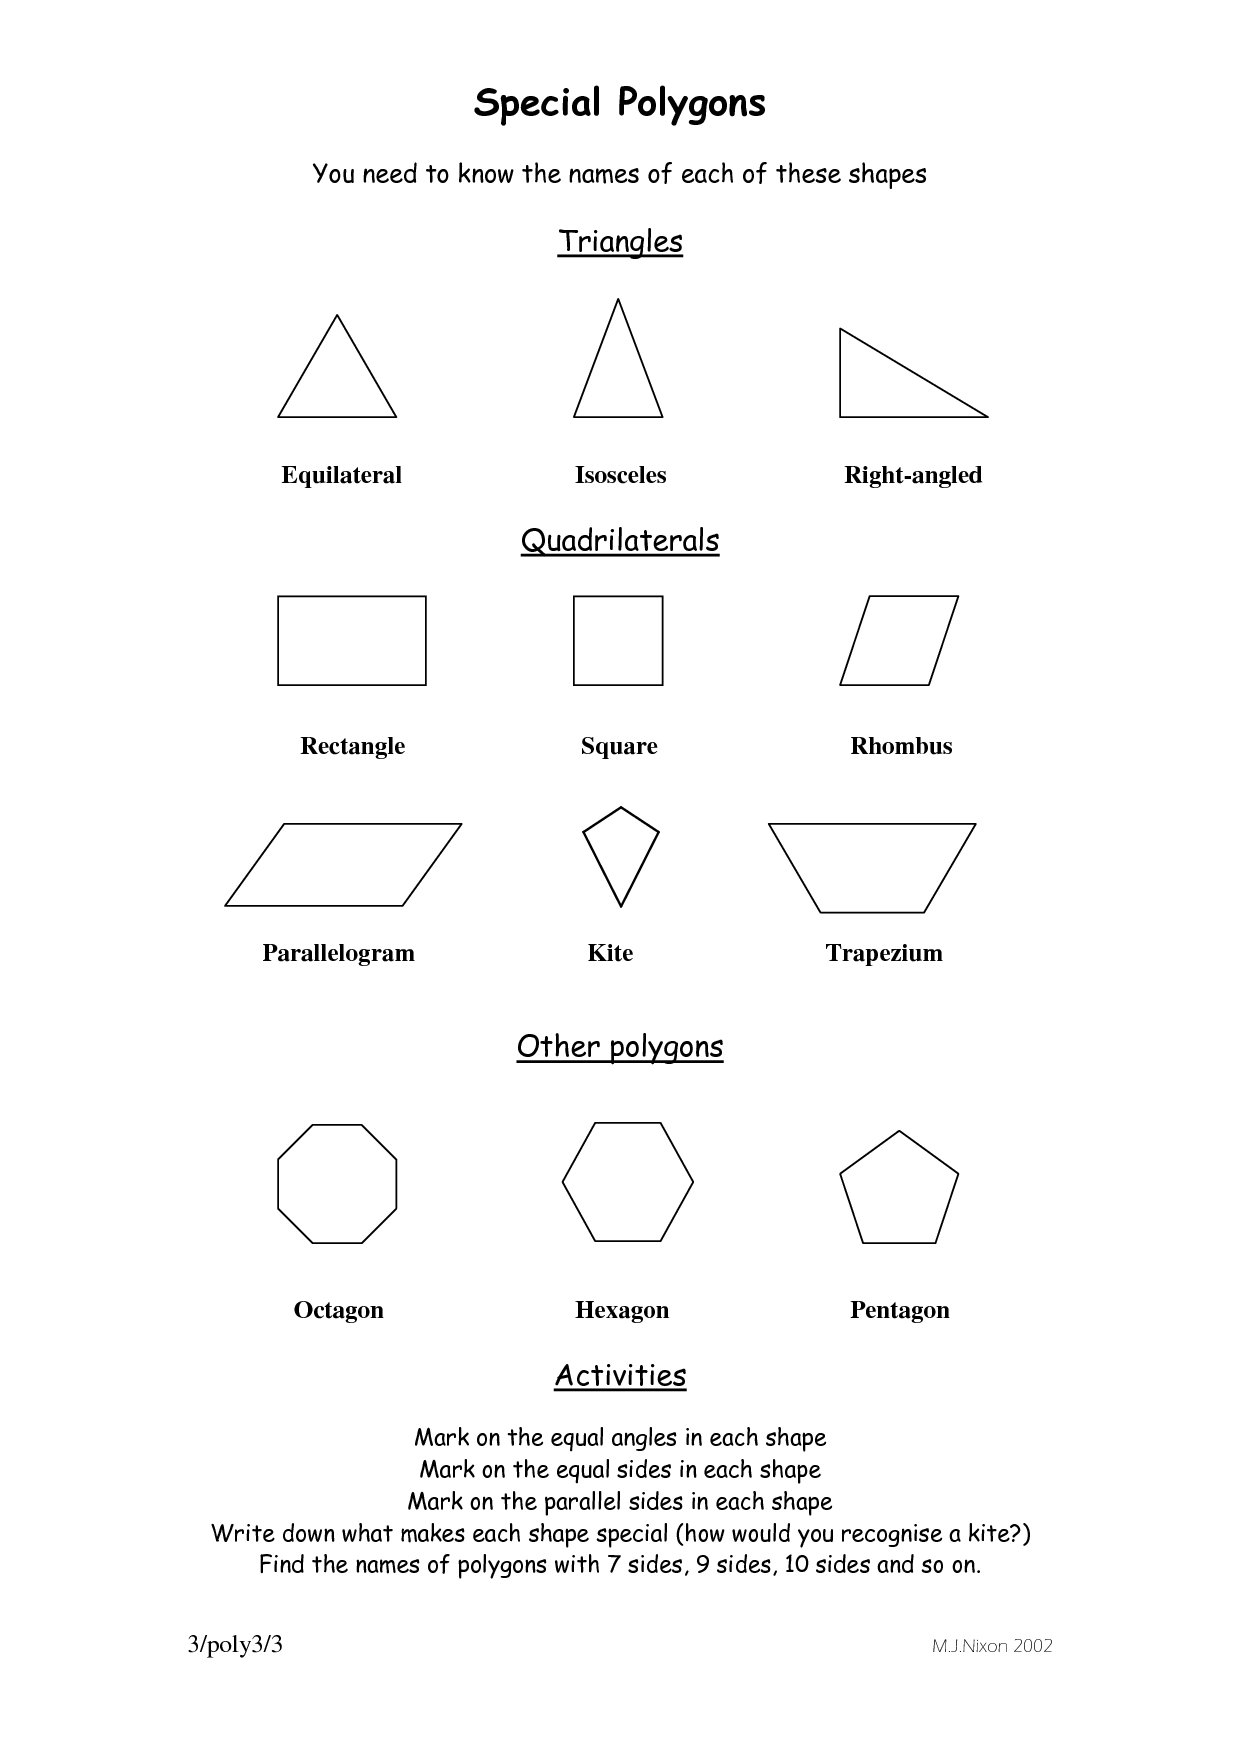 Polygon Shapes And Names